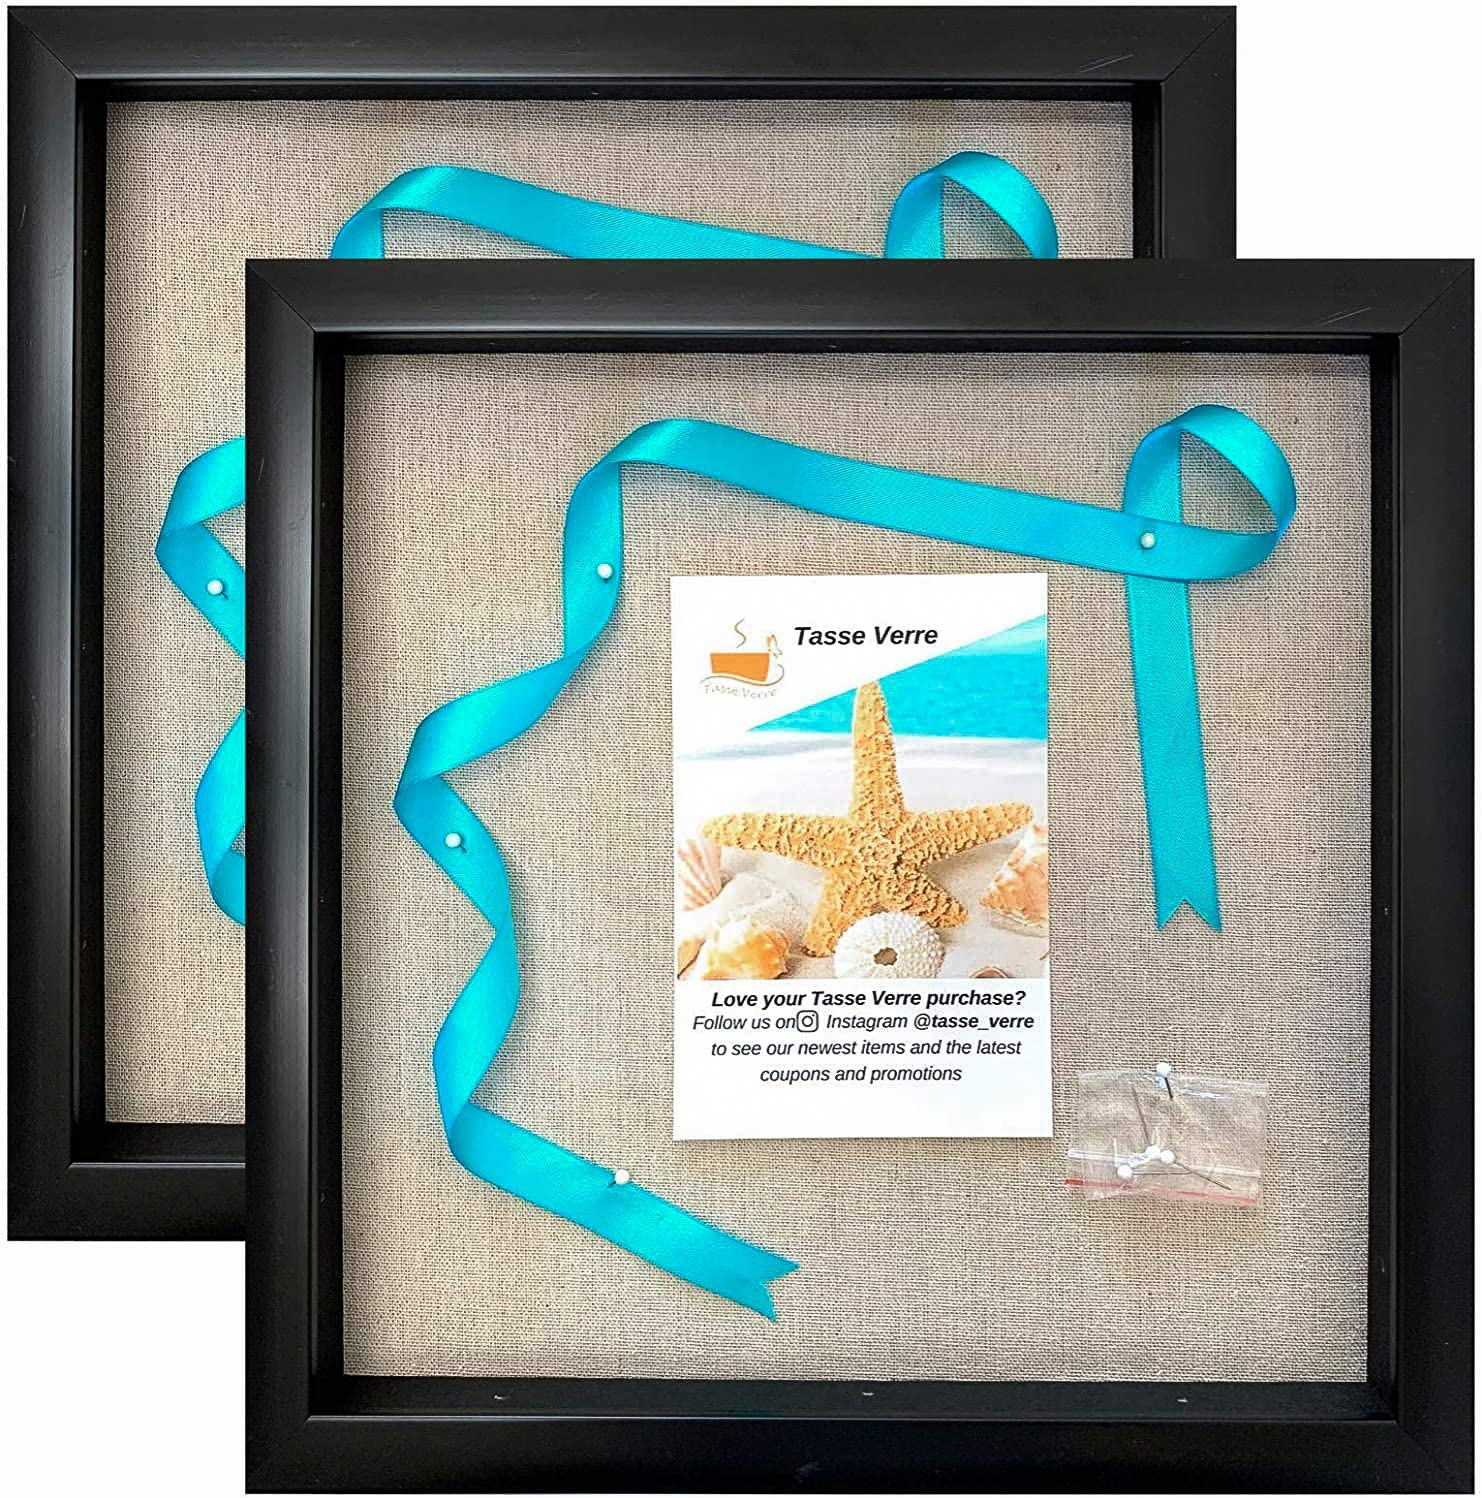 Tasse Verre 12x12 Display Shadow Box Frame (2-Pack) with Linen Background and 16 Stick Pins - Ready to Hang Shadowbox Picture Boxes - Easy to Use - Box Display Case Baby and Sports Memorabilia Wall